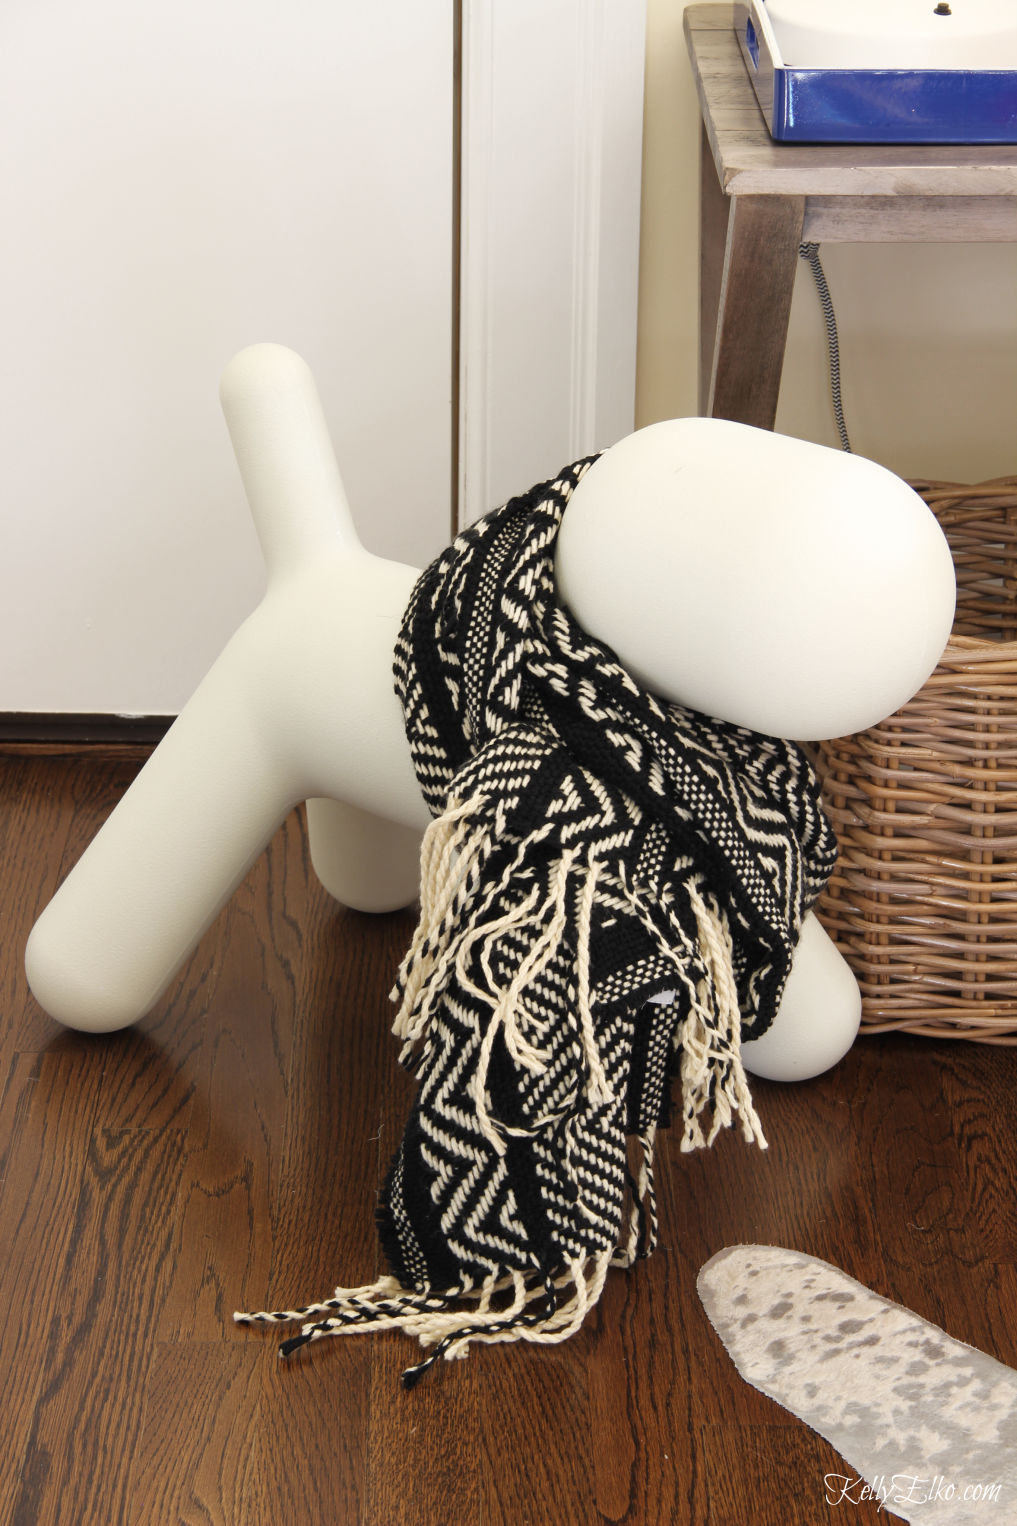 How cute is this dog sculpture wearing a cozy winter scarf kellyelko.com #christmas #christmasdecor #christmasdog